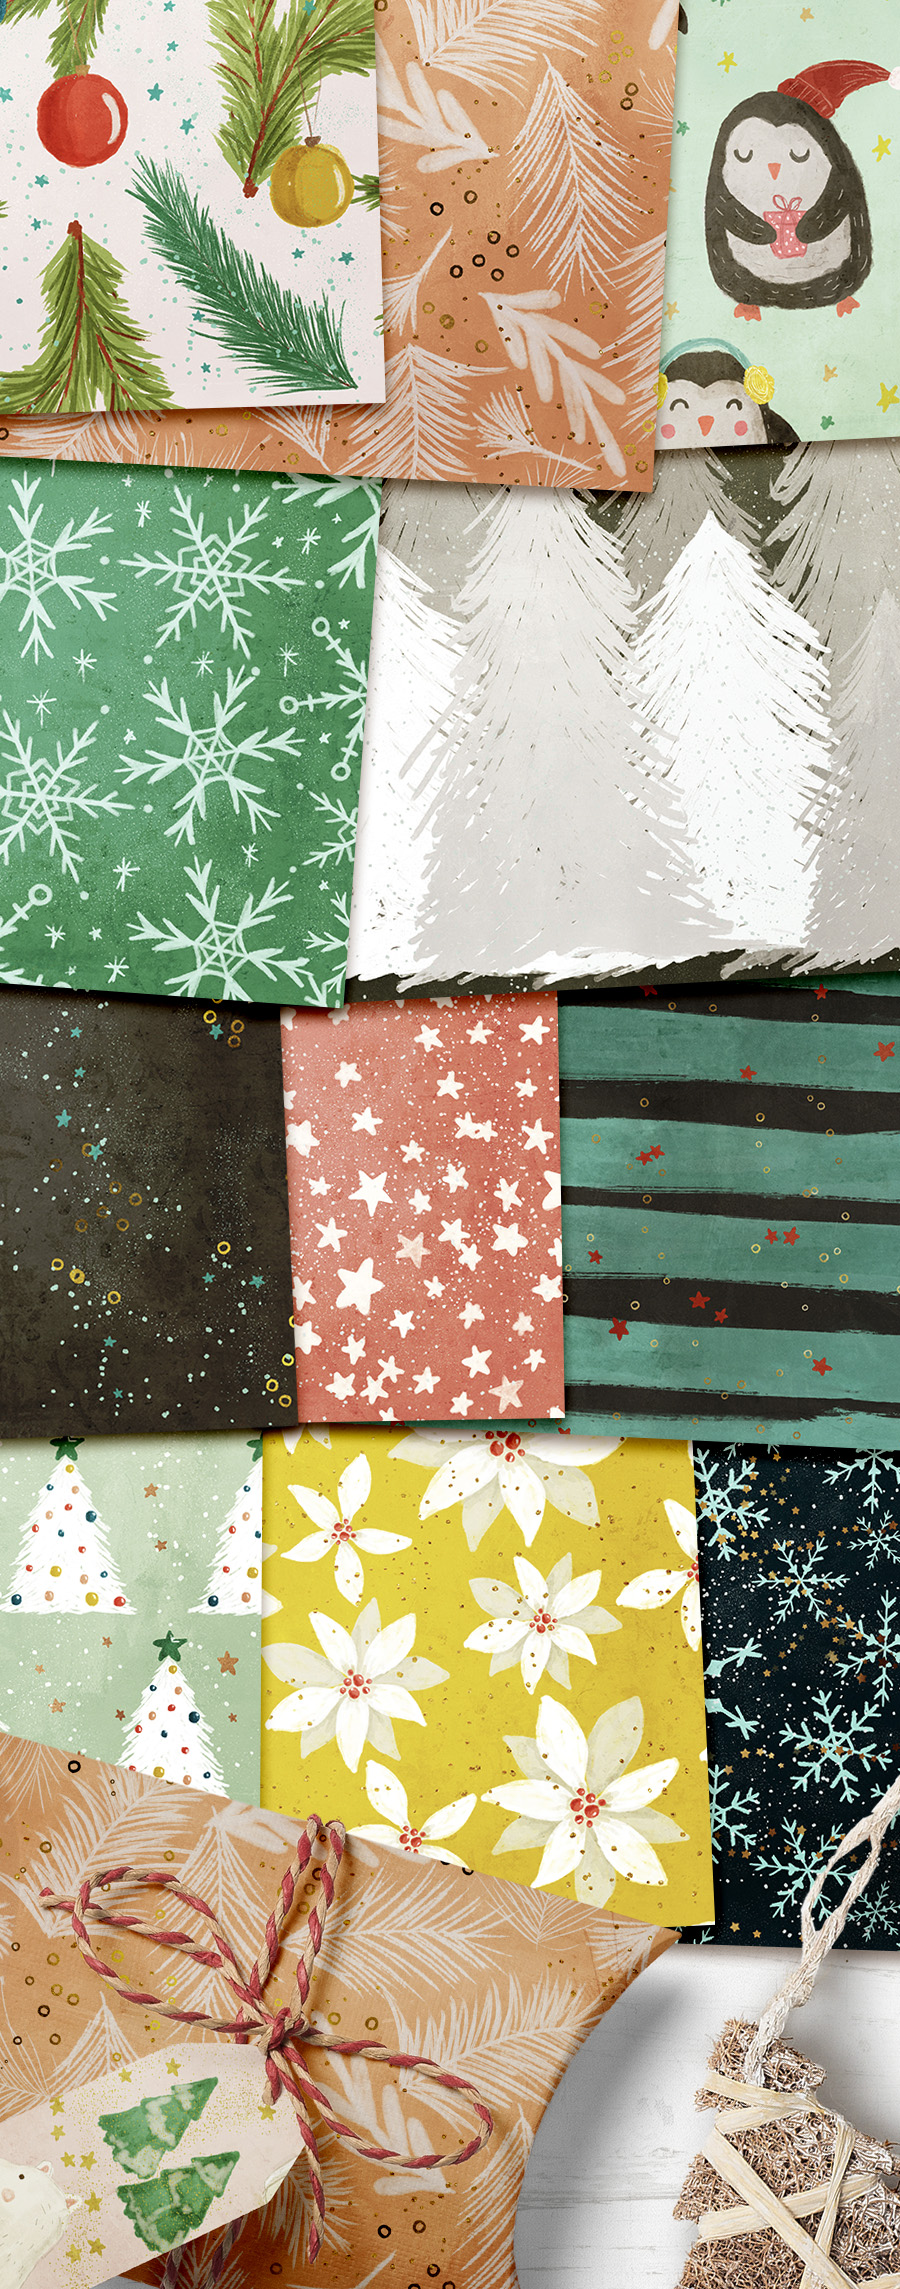 Watercolor Winter Seamless Patterns example image 3